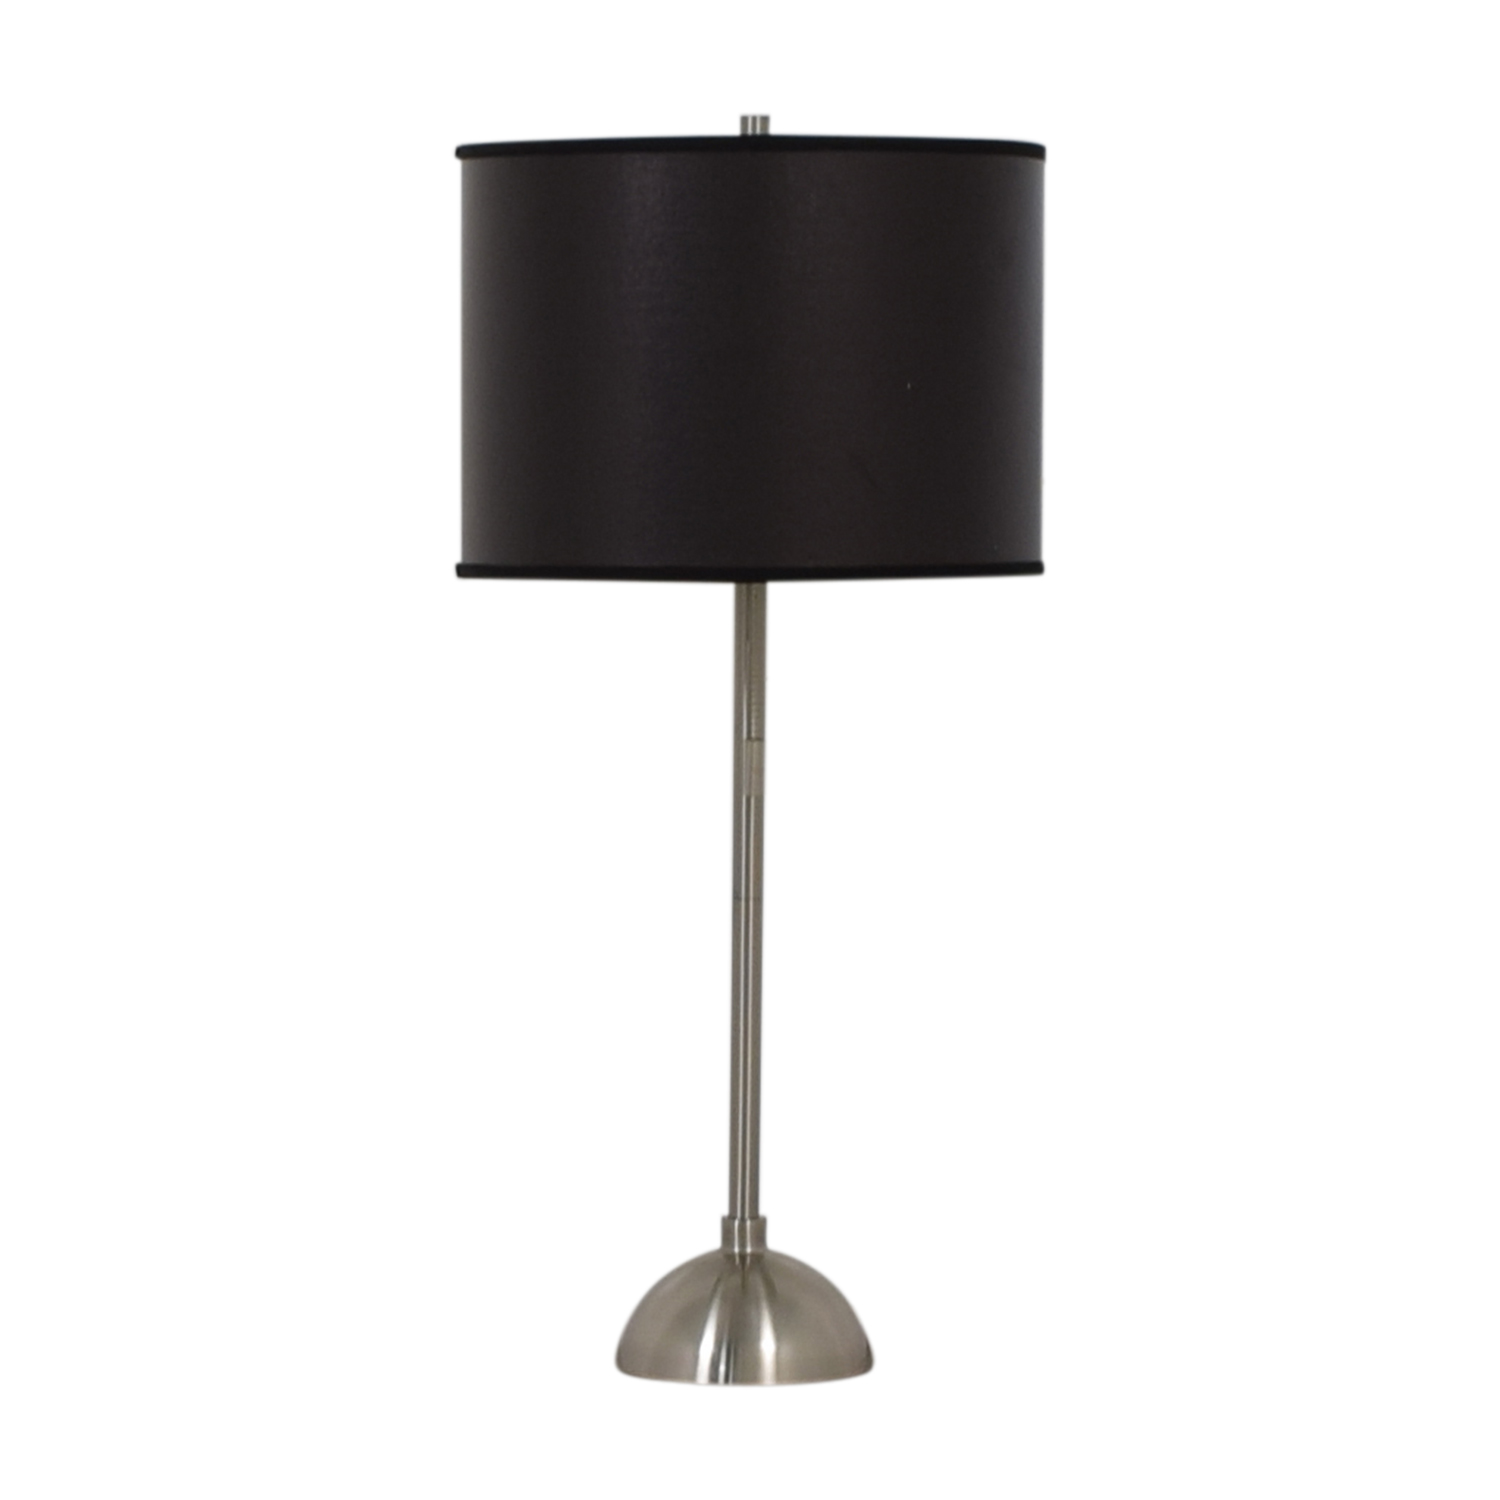 Silver Base Table Lamp With Black Shade